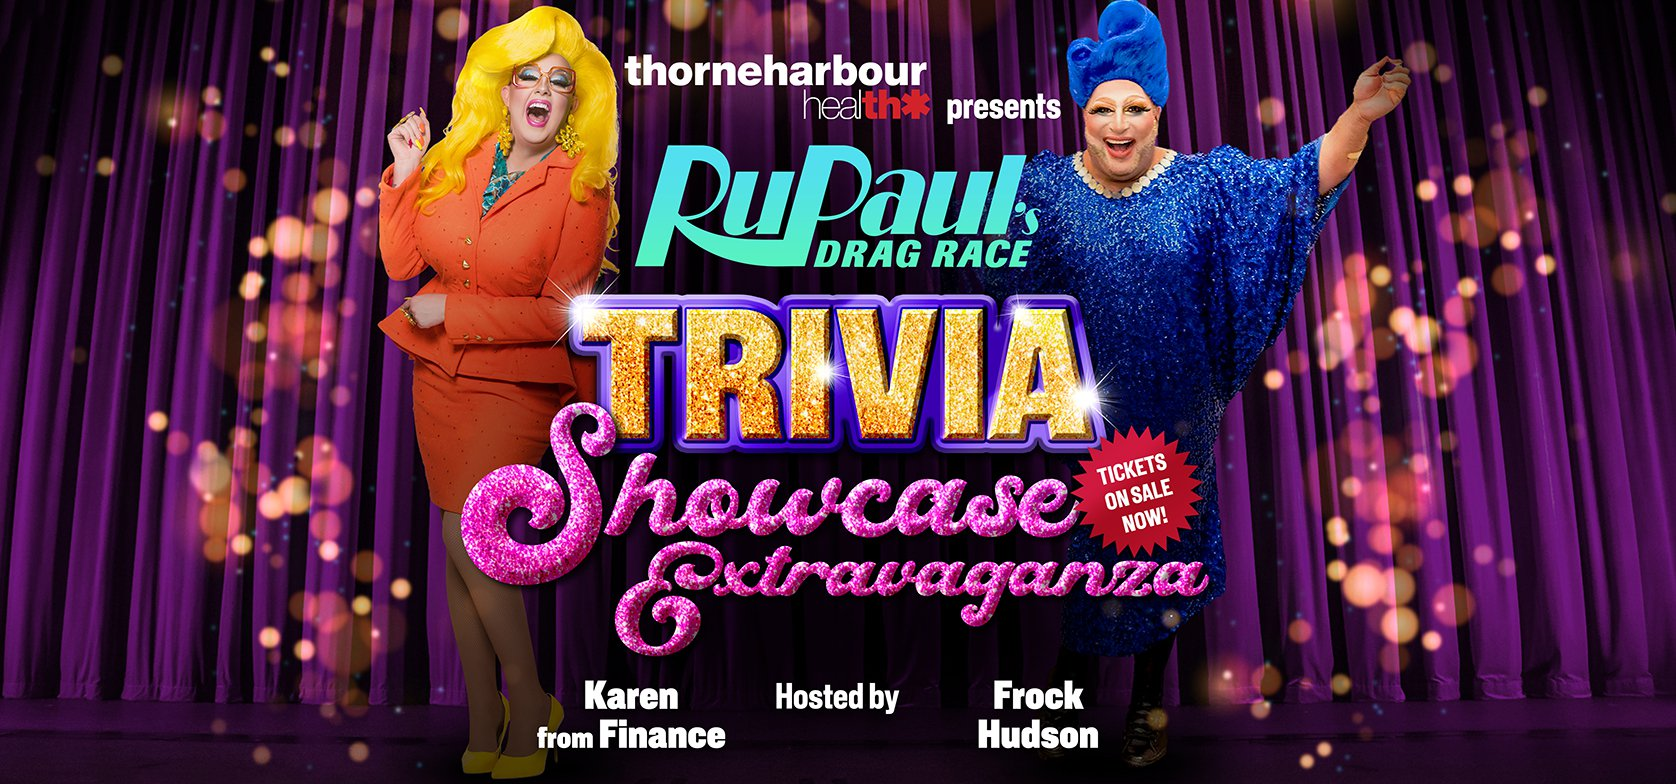 RuPauls Drag Race Trivia Banner with Karen from Finance and Frock Hudson